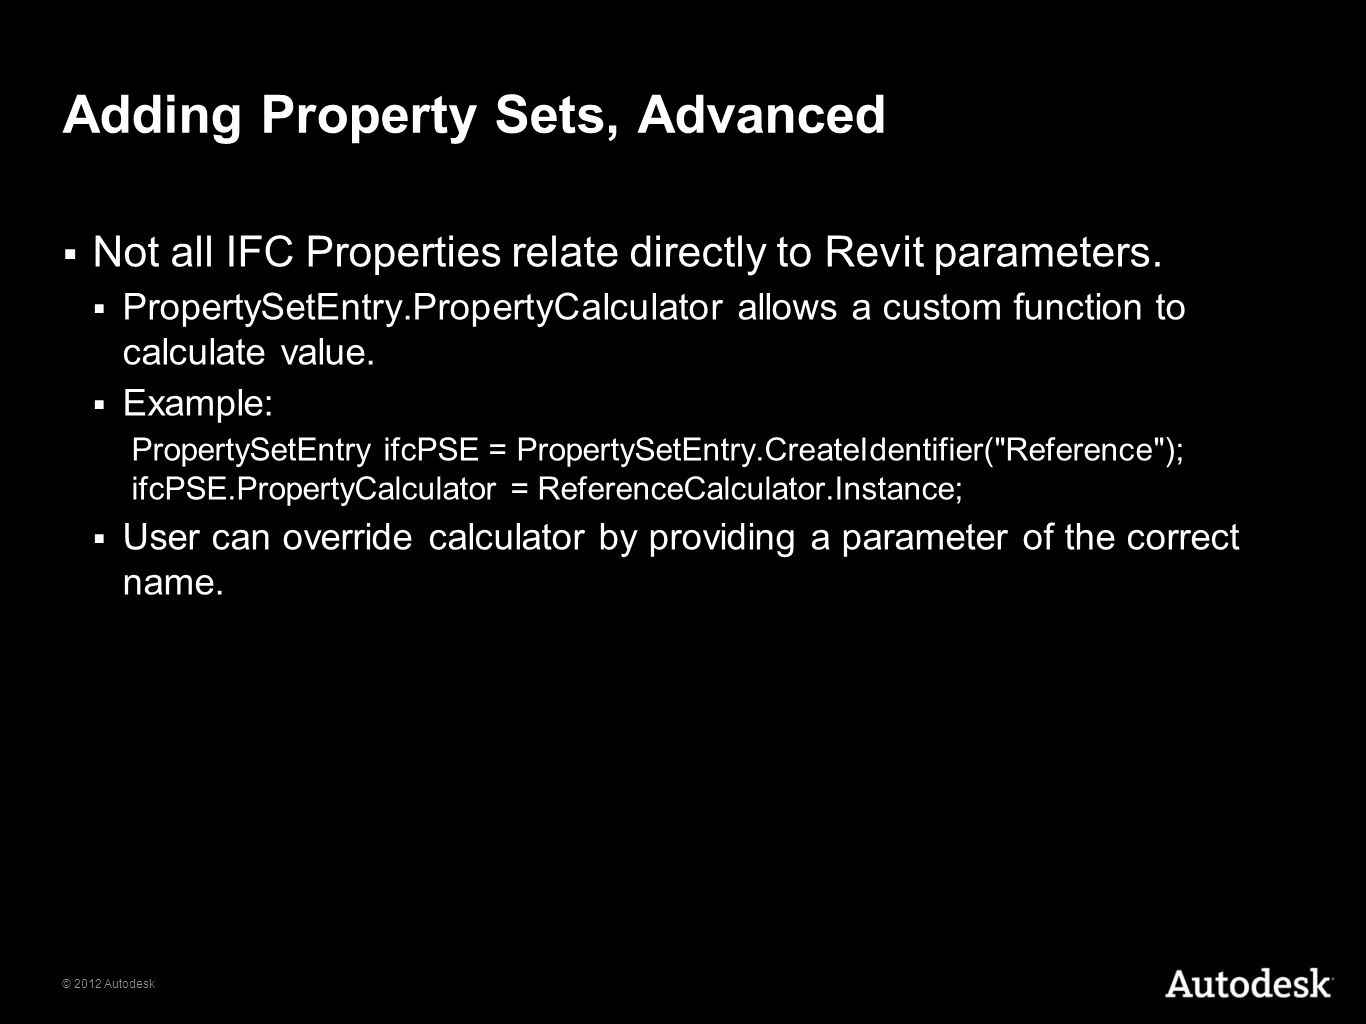 © 2012 Autodesk Adding Property Sets, Advanced Not all IFC Properties relate directly to Revit parameters. PropertySetEntry.PropertyCalculator allows